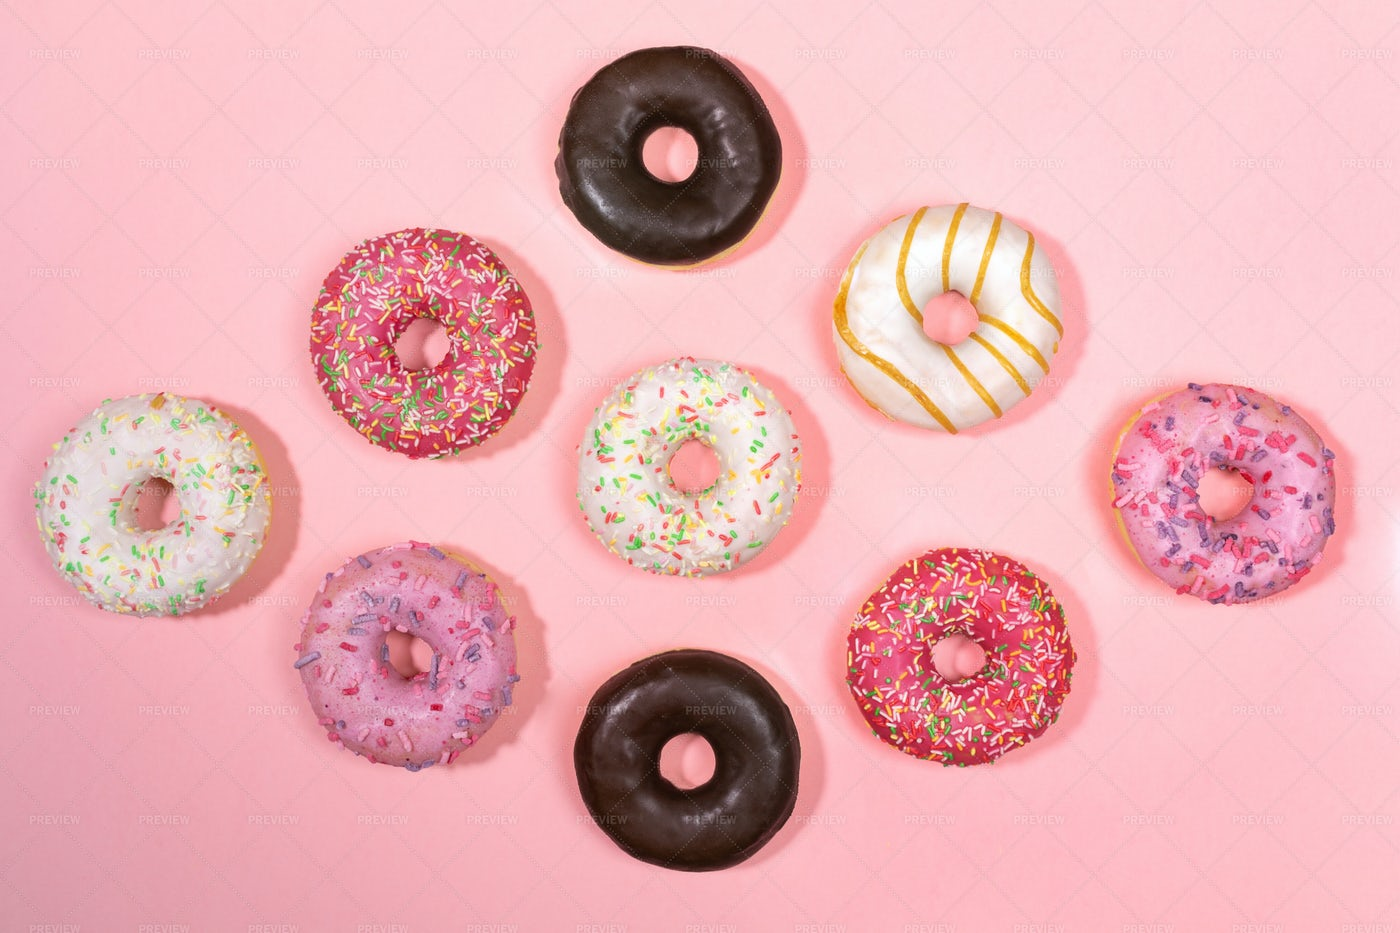 Traditional Doughnuts On Pink.: Stock Photos